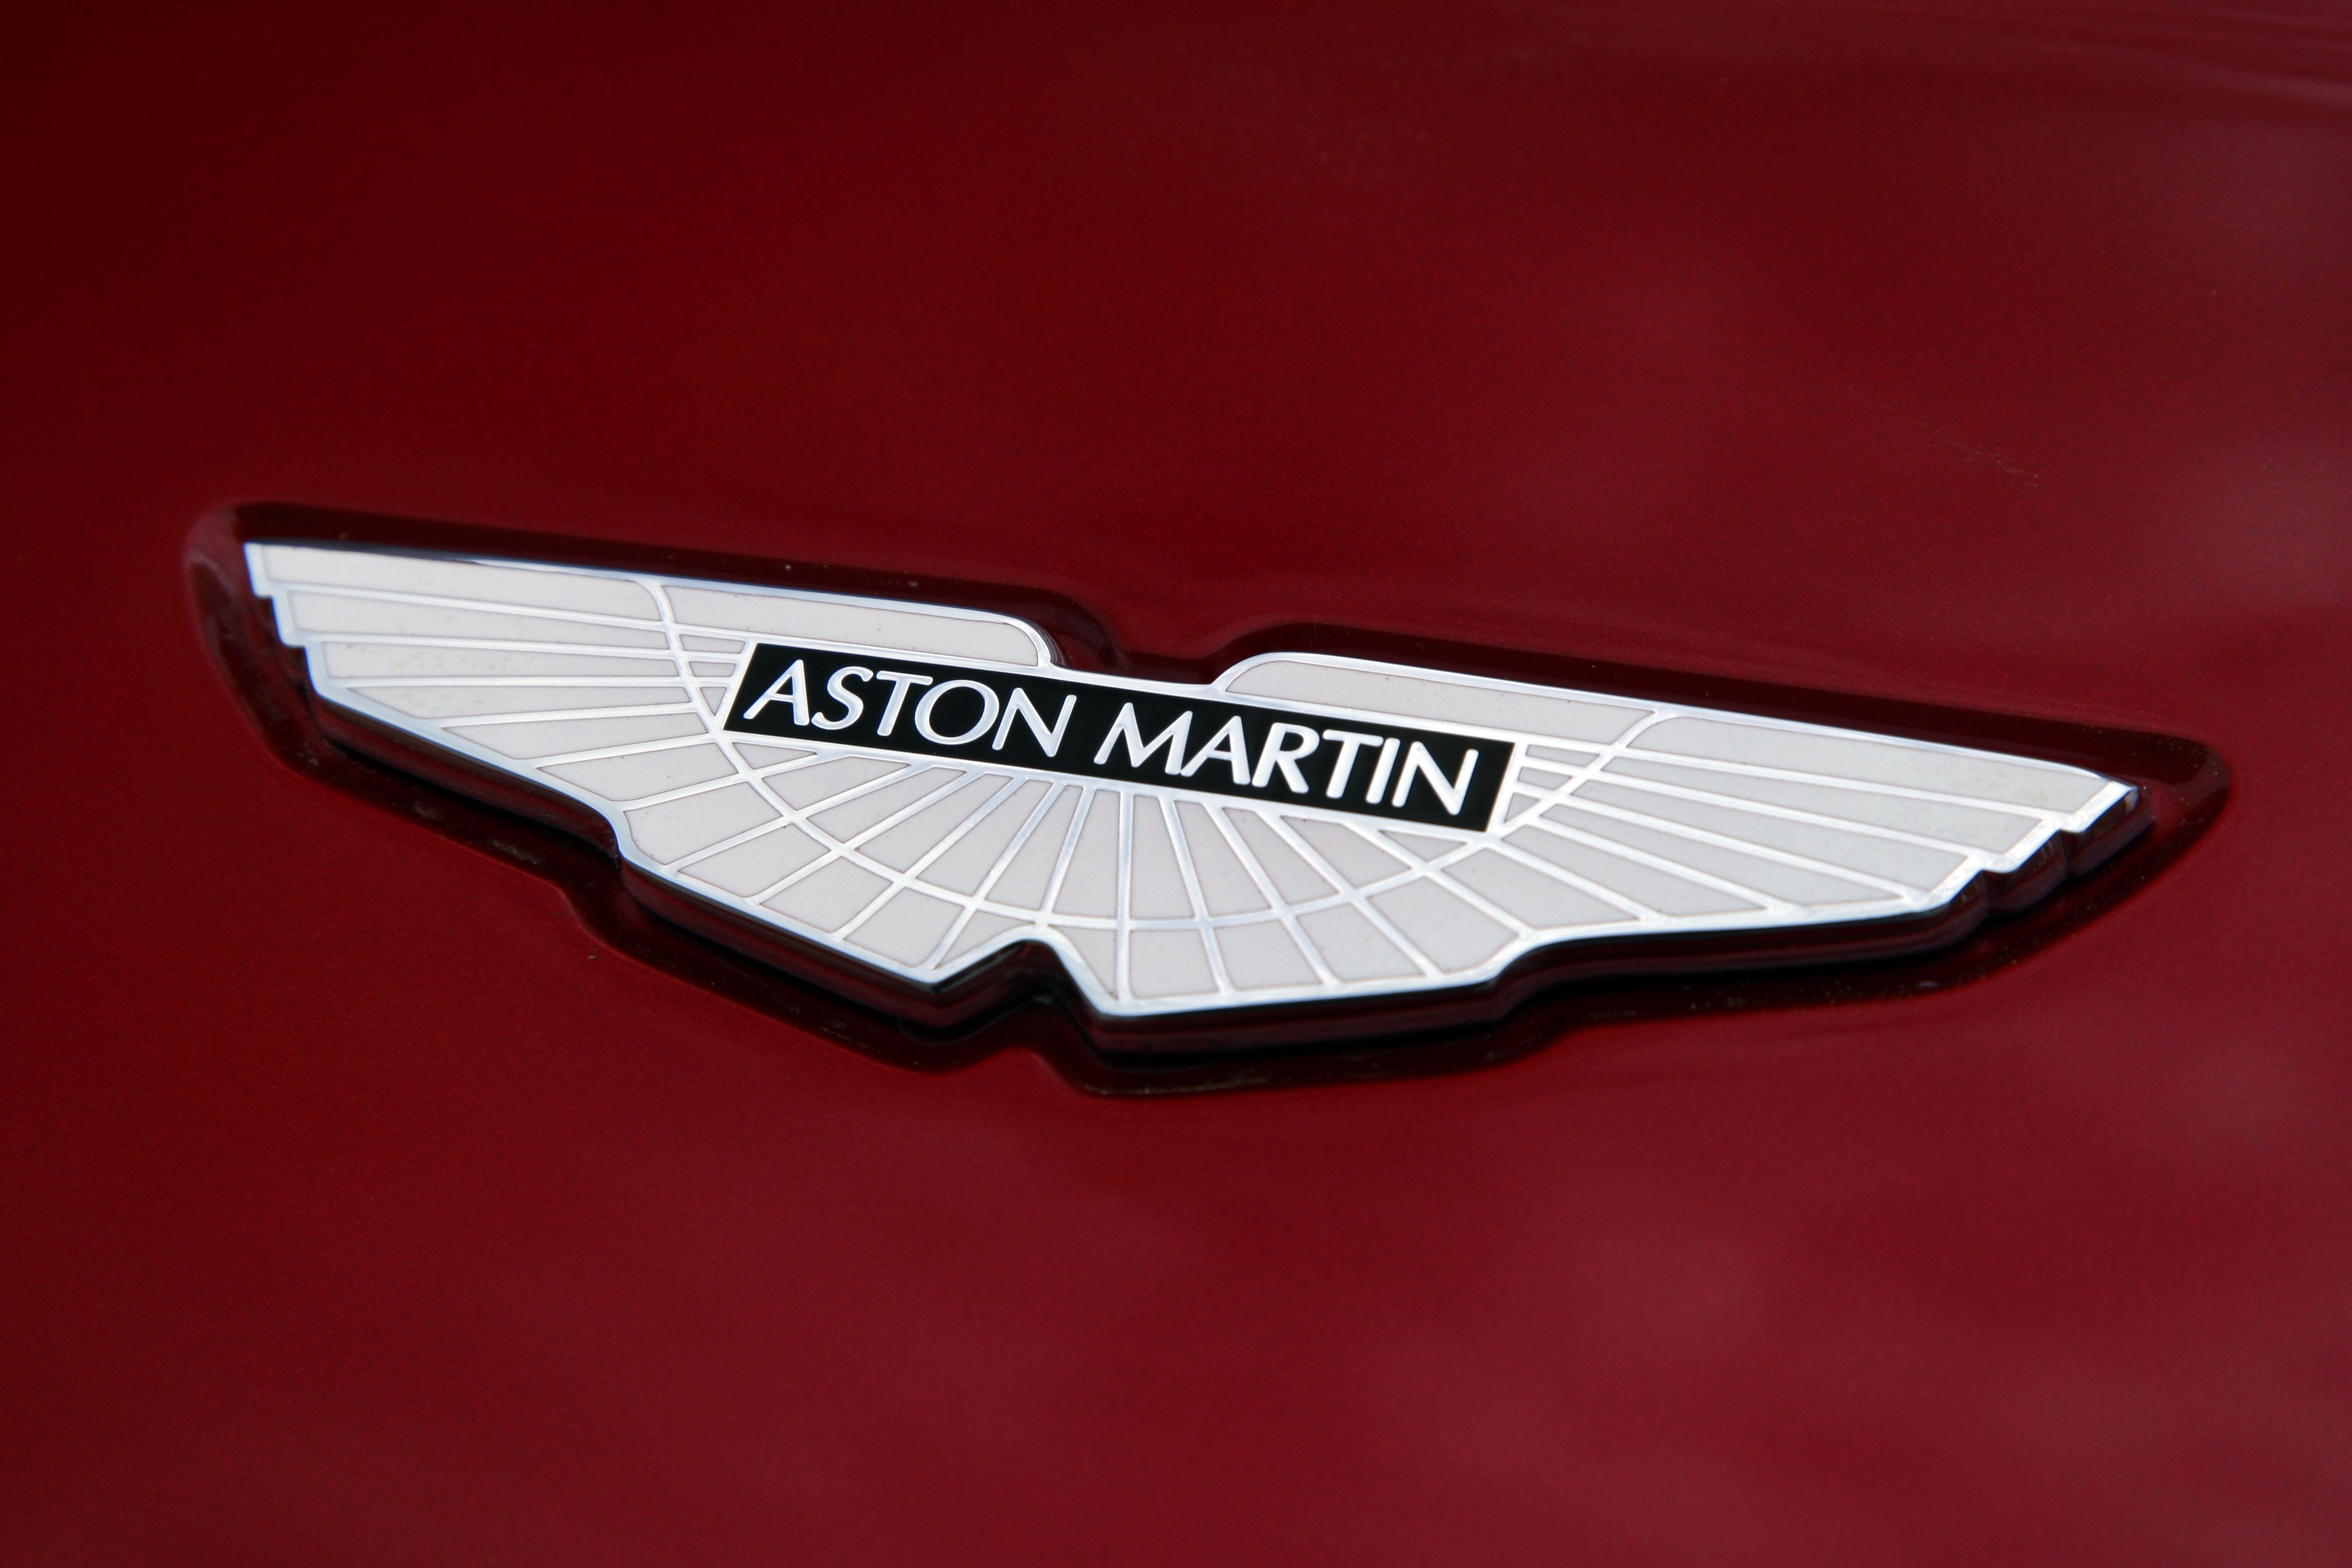 Aston Martin Logo Widescreen Wallpaper 59087 3888x2592px 3888x2592